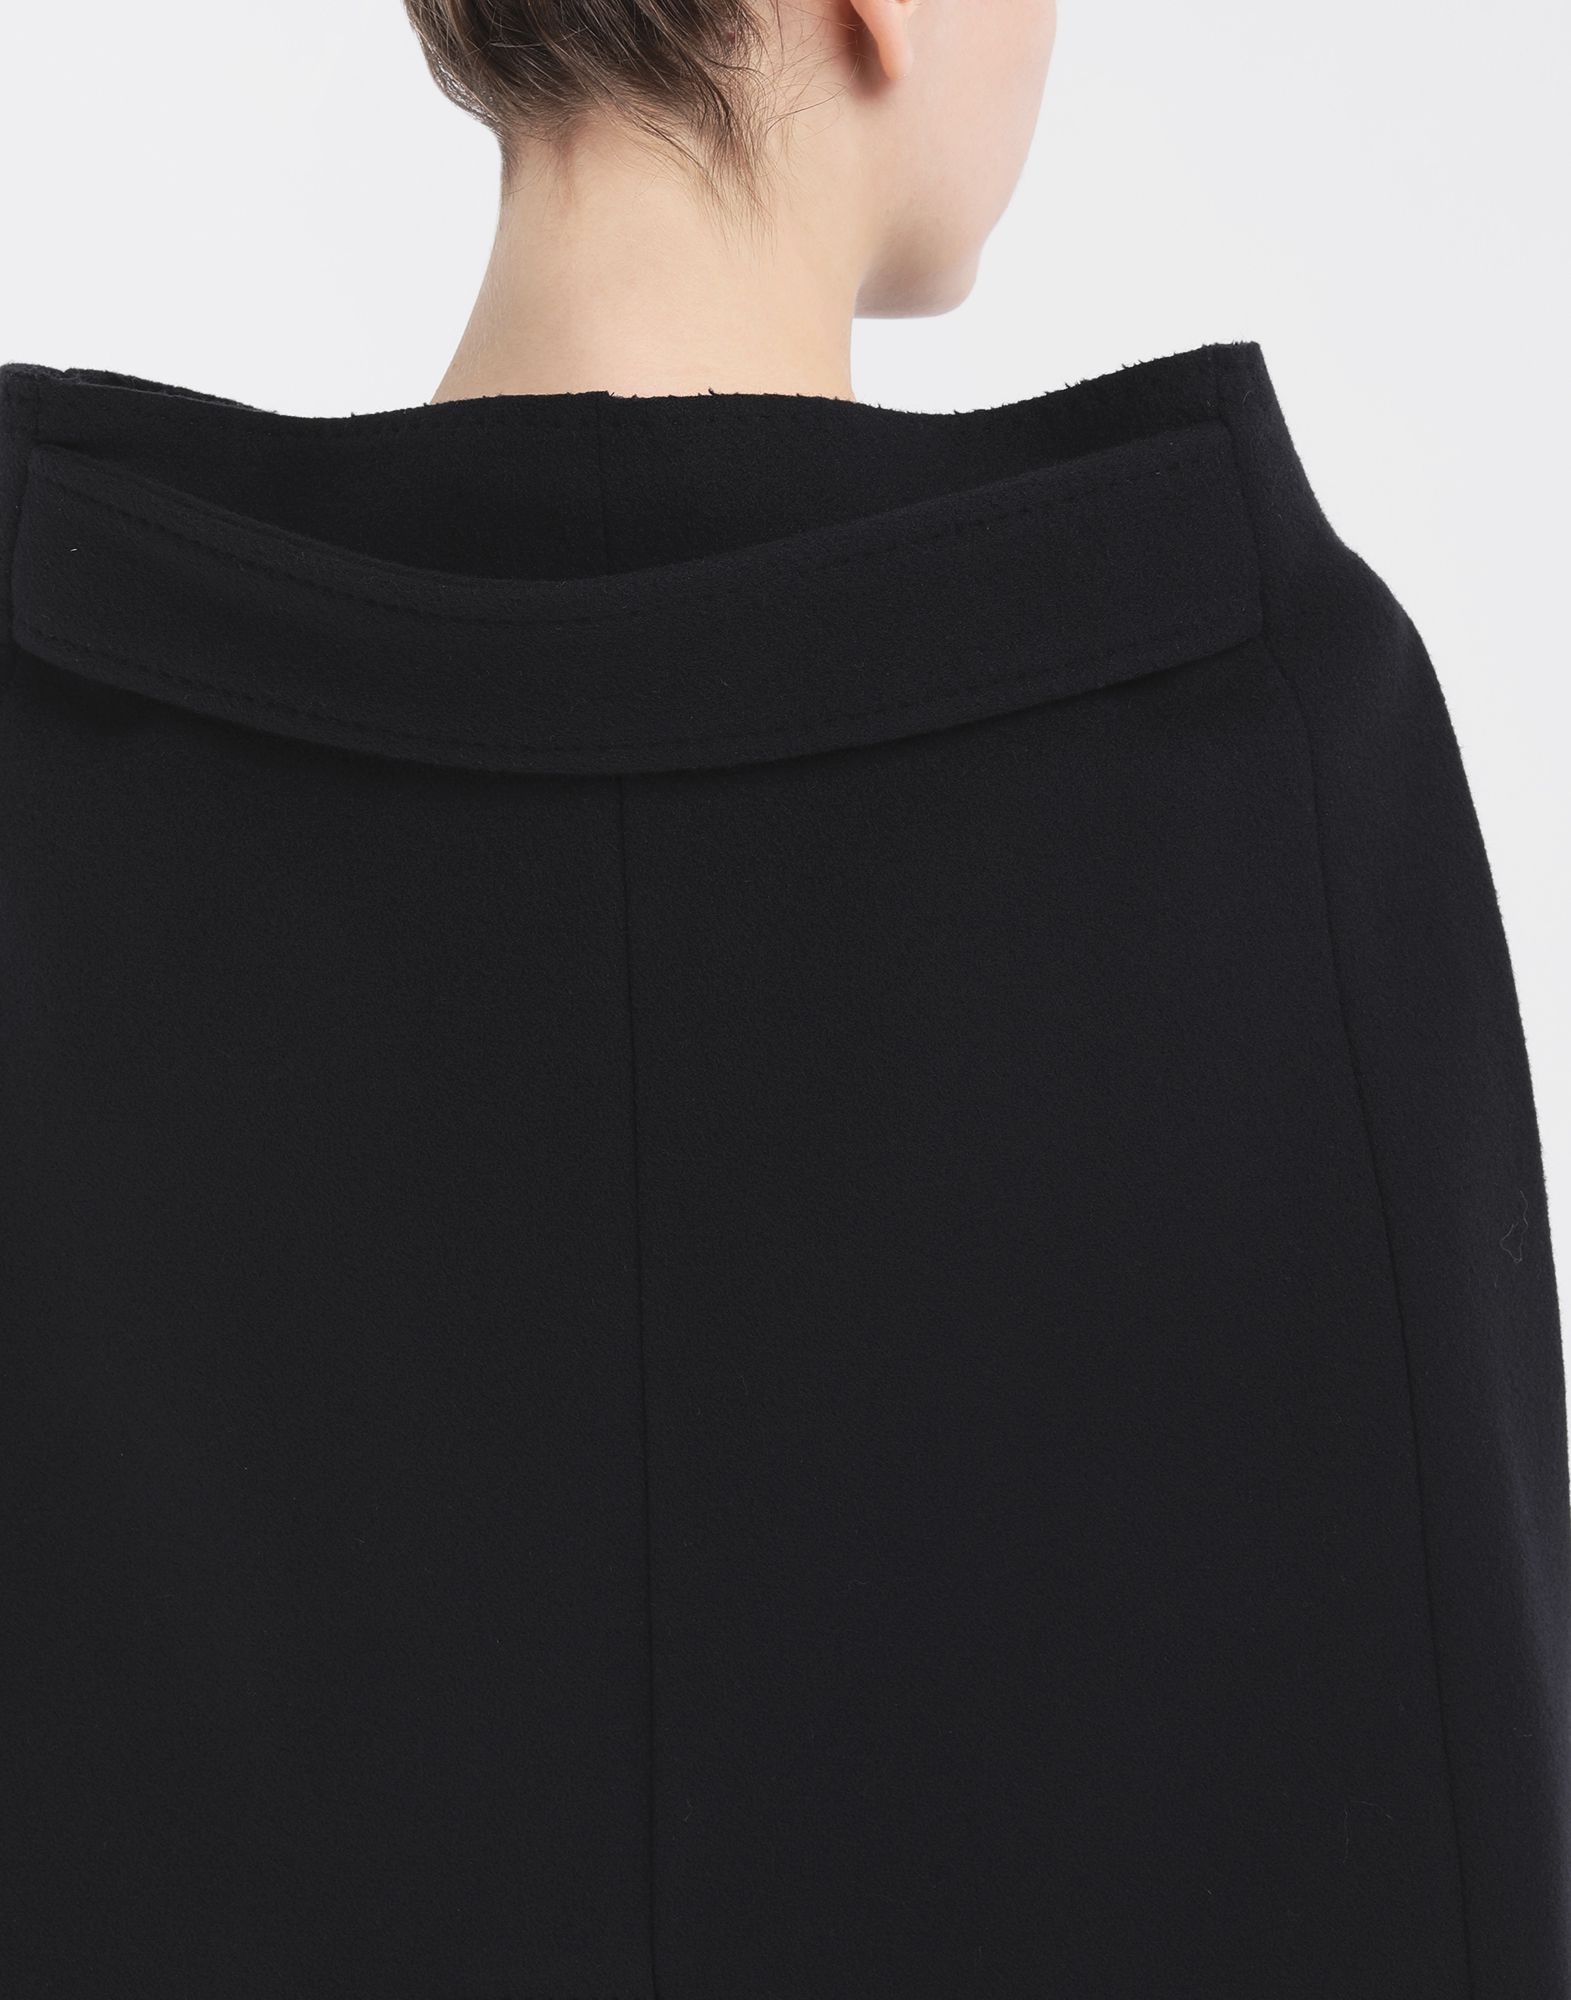 MAISON MARGIELA Wool cape Light jacket Woman b